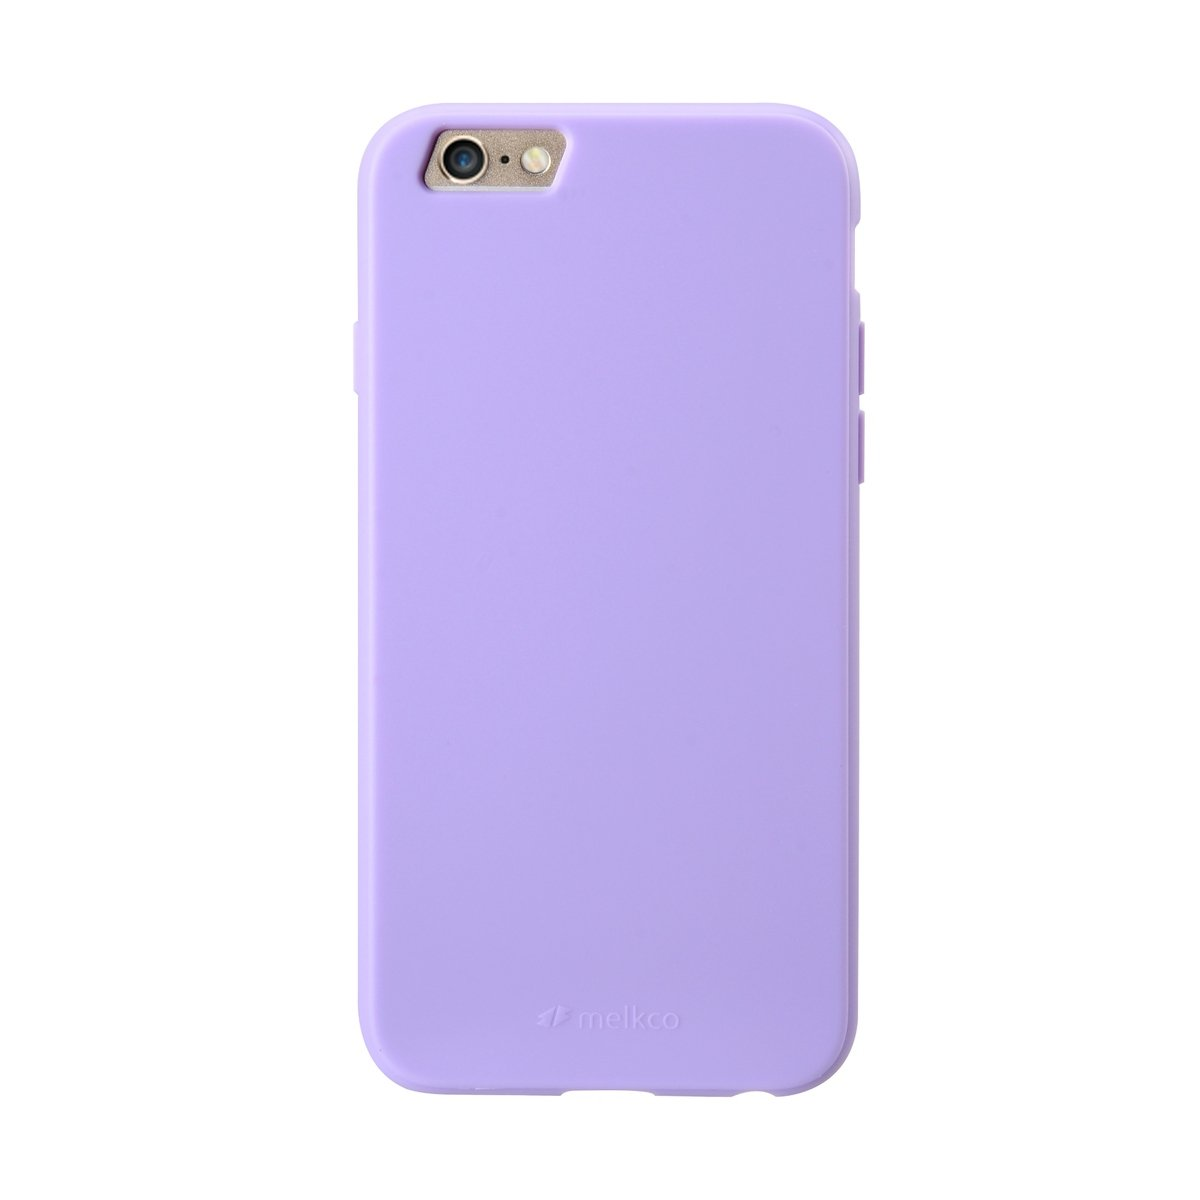 "Poly Jacket TPU(Ver.3) Cases for Apple iPhone 6 Plus/6S Plus 5.5"" - (Pearl Purple)"